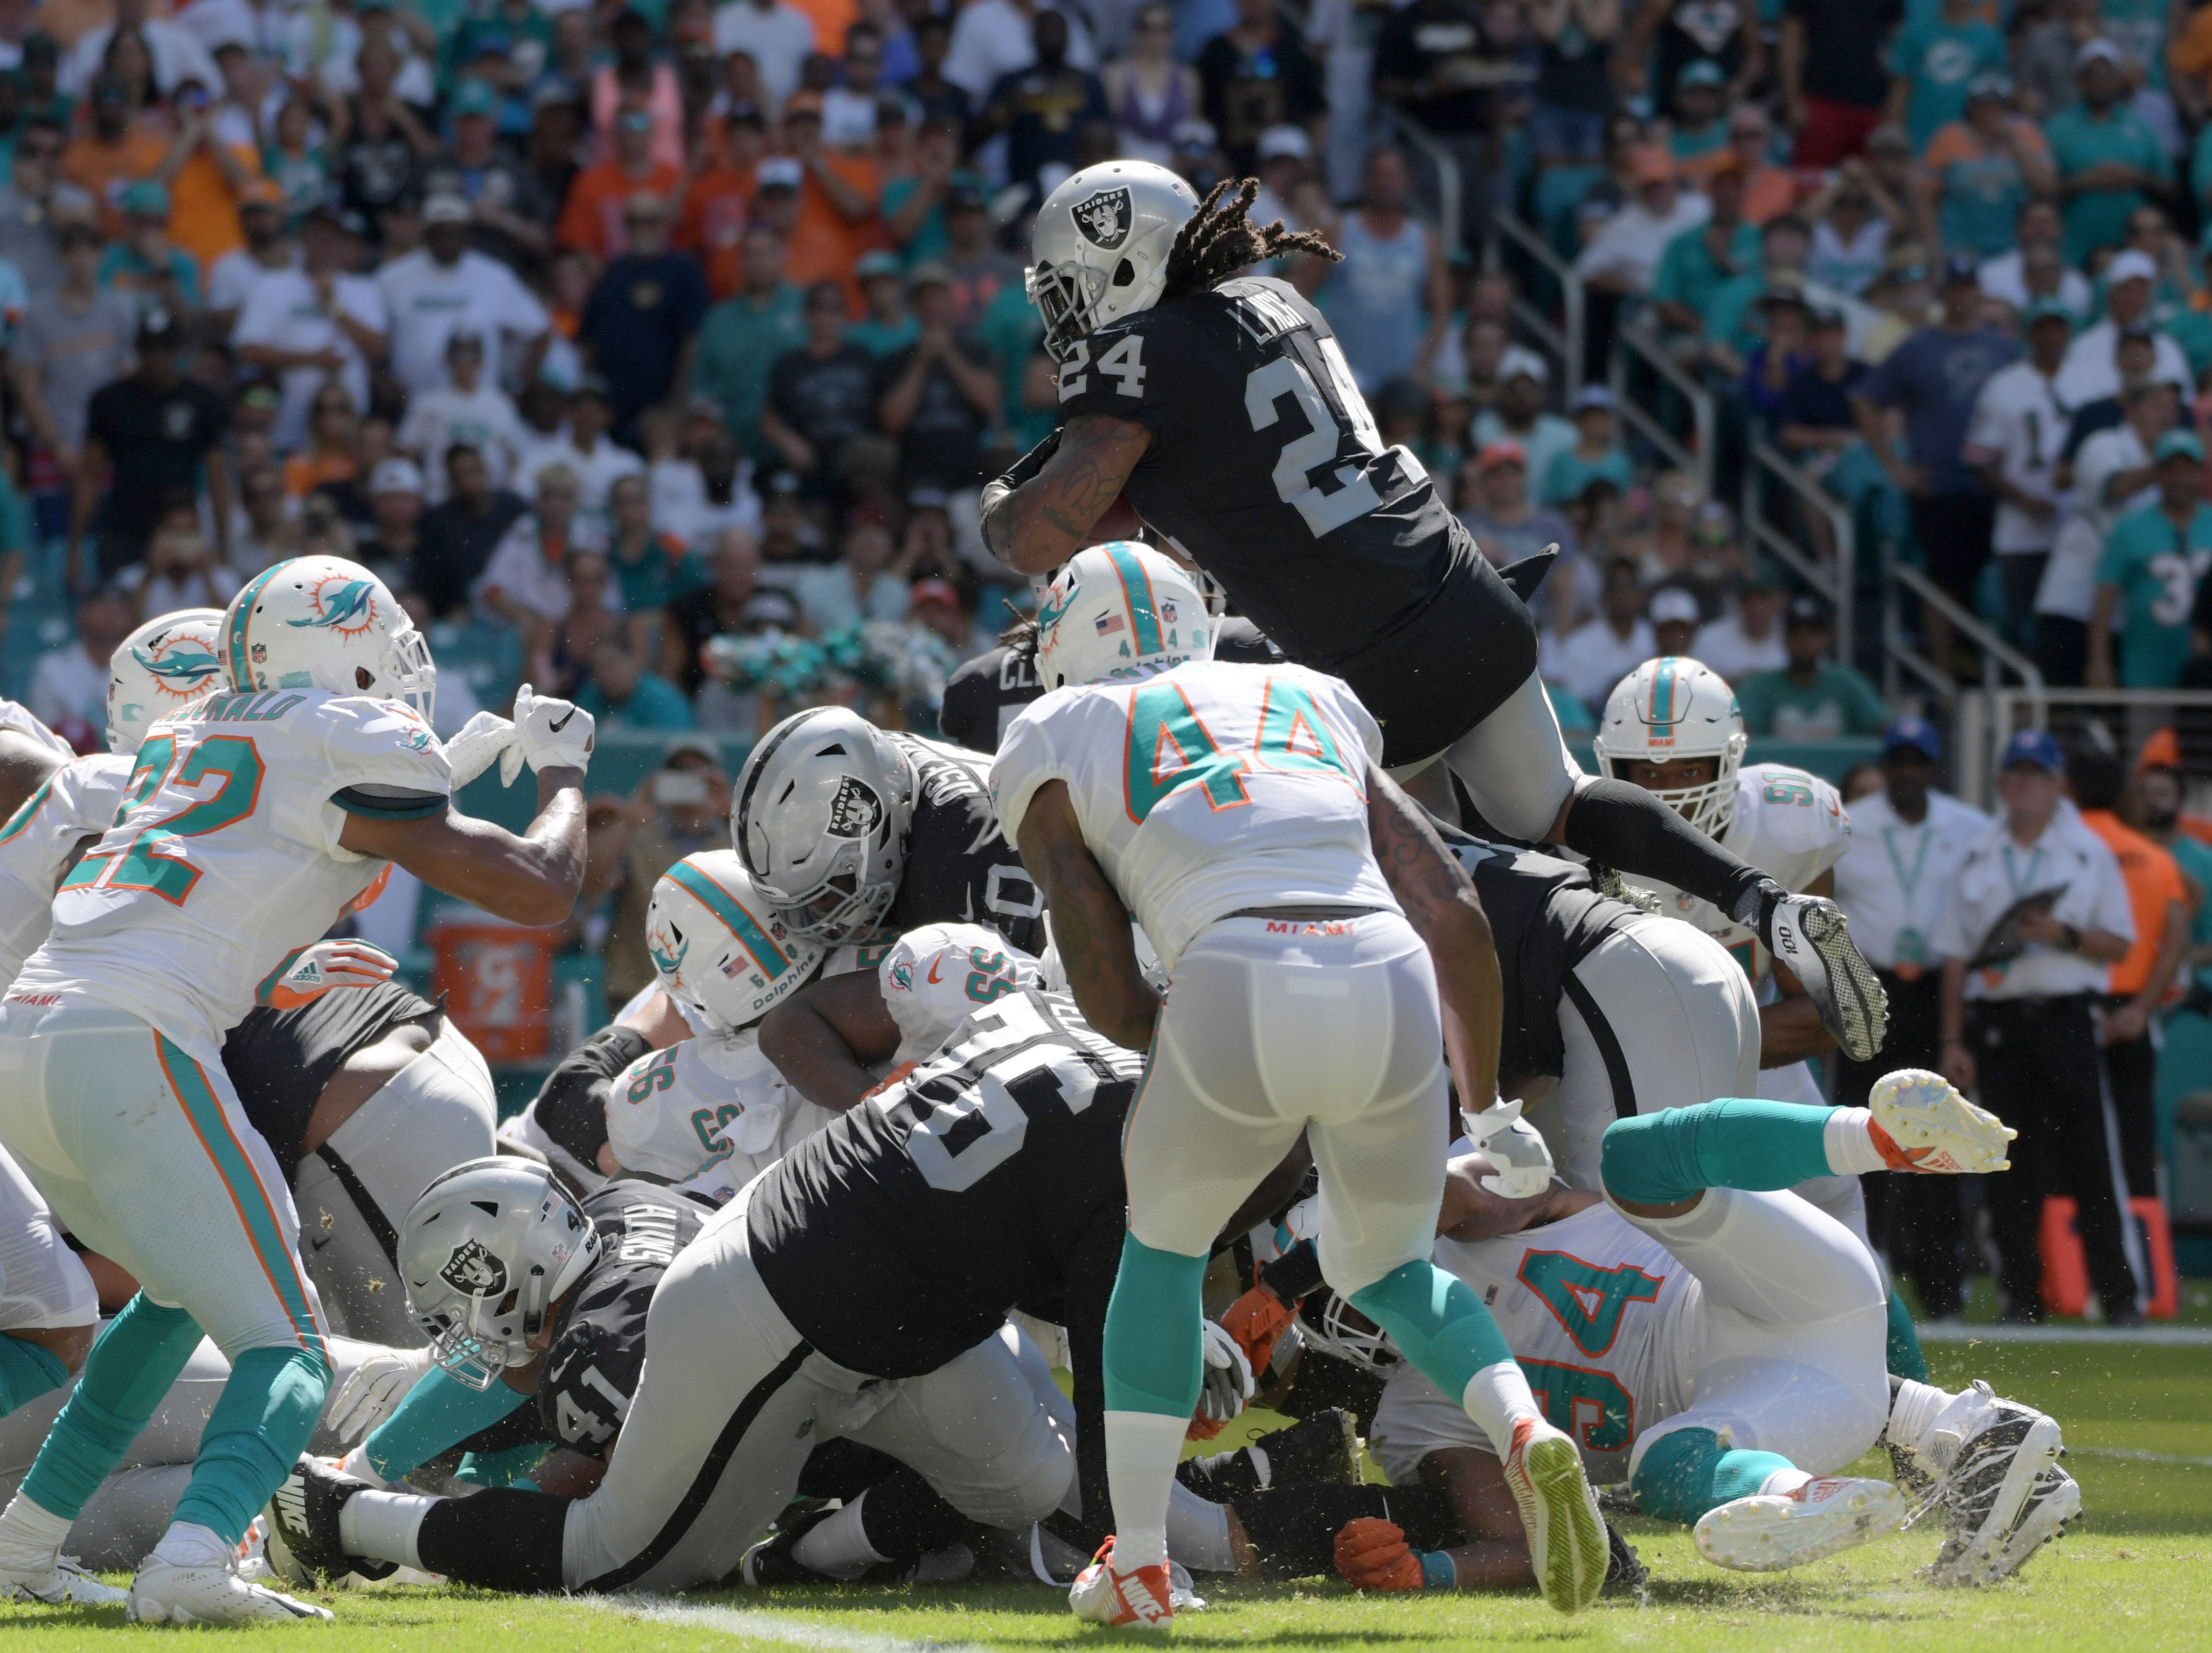 Oakland Raiders running back Marshawn Lynch scores on a one-yard touchdown run in the third quarter against the Miami Dolphins at Hard Rock Stadium.